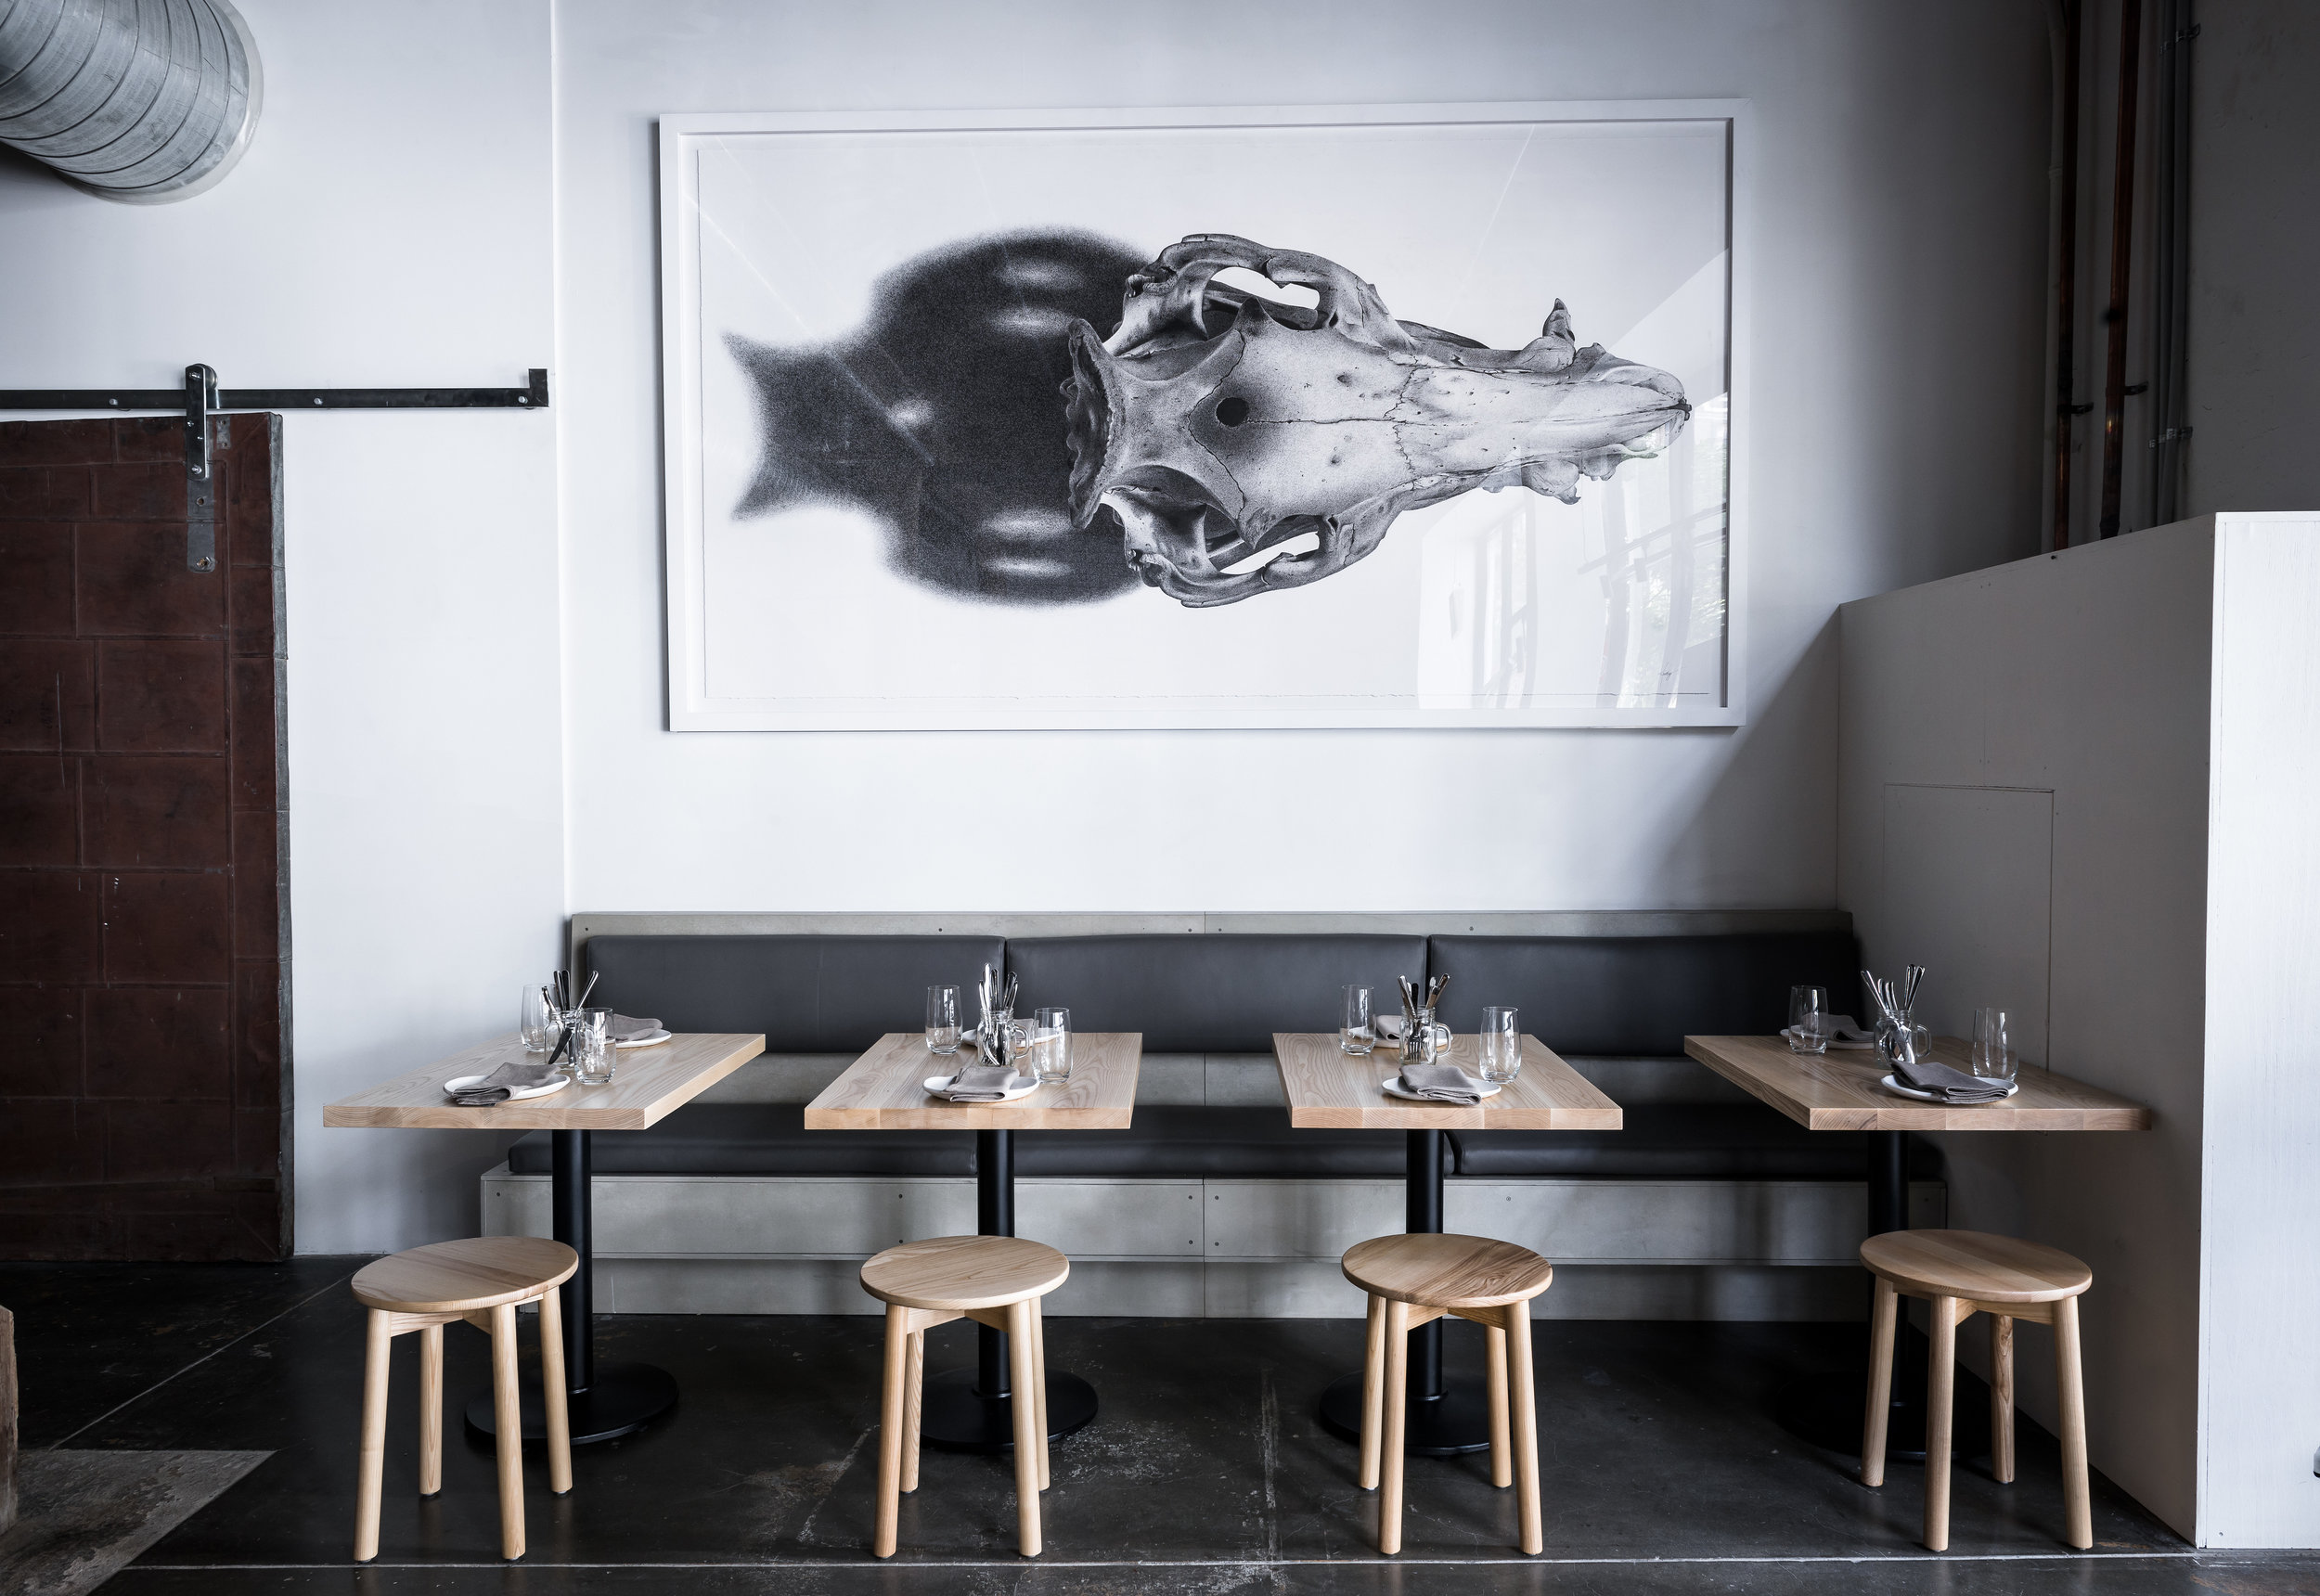 Finished artwork at Nomad in Surry Hills